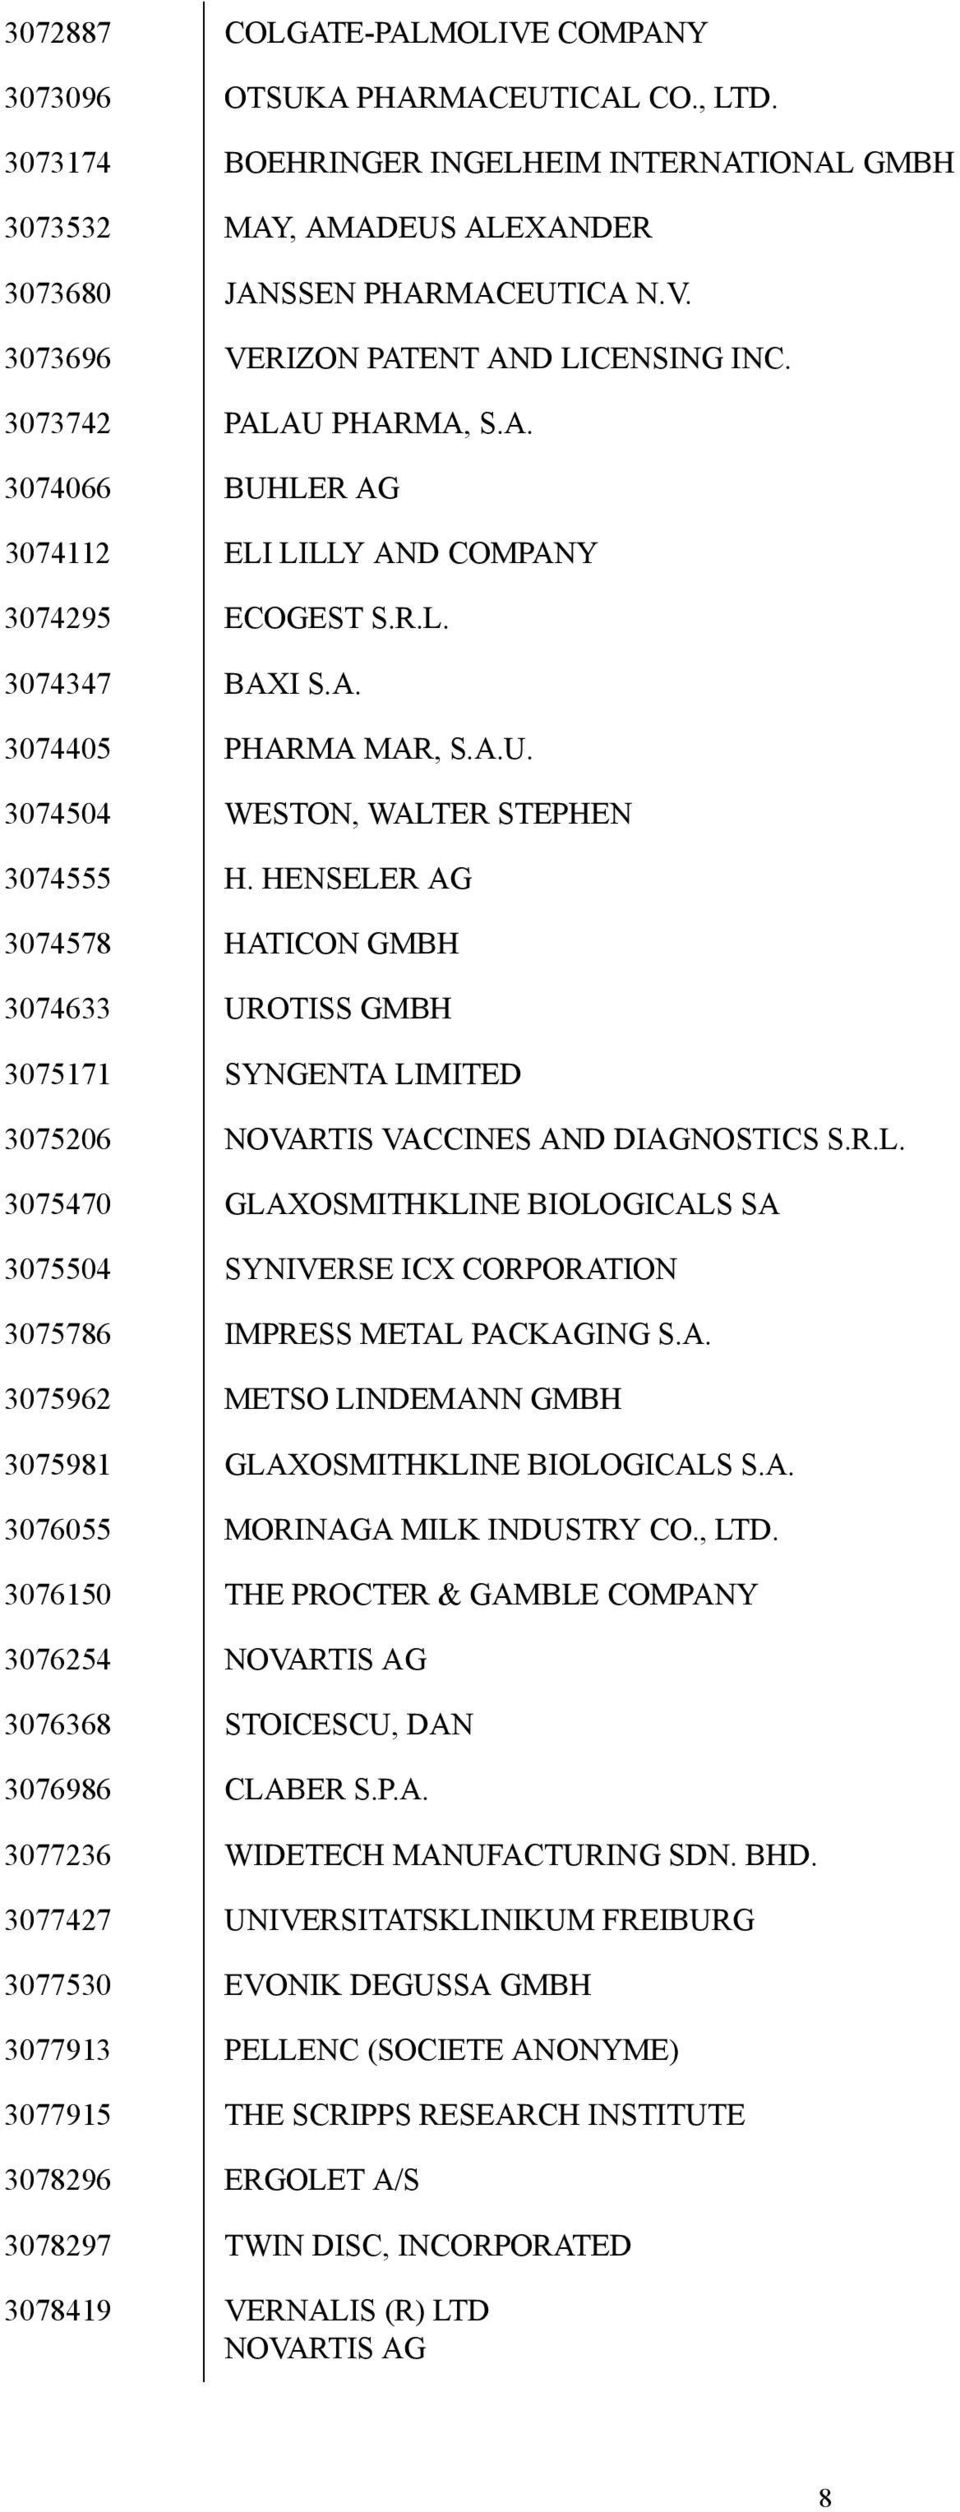 HENSELER AG 3074578 HATICON GMBH 3074633 UROTISS GMBH 3075171 SYNGENTA LIMITED 3075206 NOVARTIS VACCINES AND DIAGNOSTICS S.R.L. 3075470 GLAXOSMITHKLINE BIOLOGICALS SA 3075504 SYNIVERSE ICX CORPORATION 3075786 IMPRESS METAL PACKAGING S.